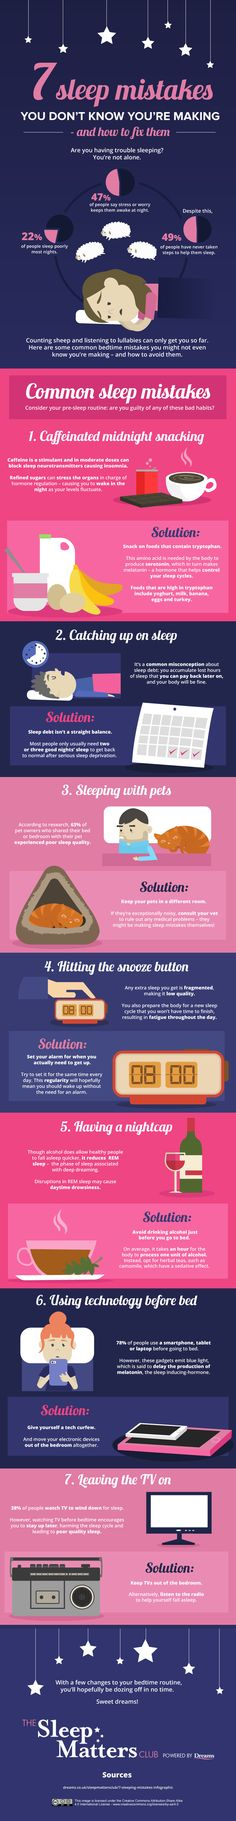 7 sleep mistakes